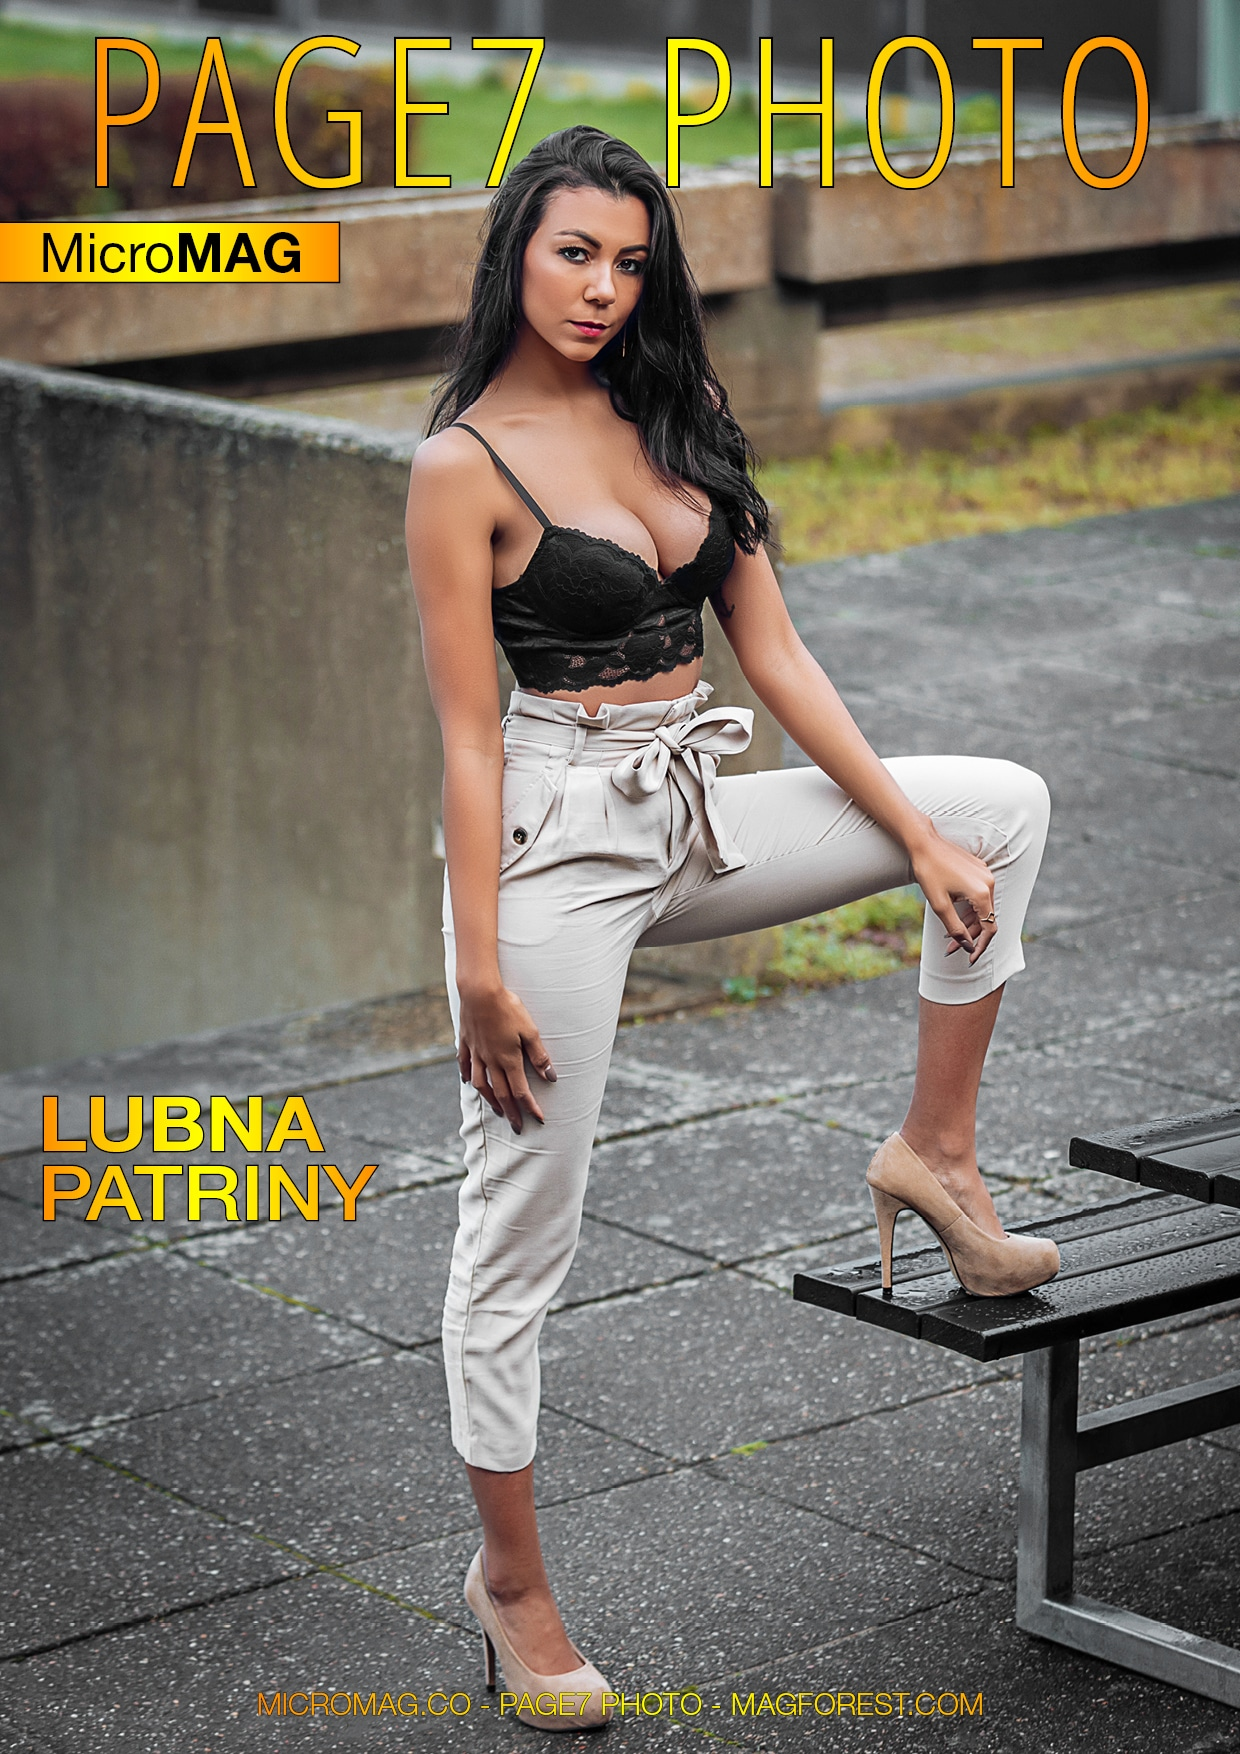 PAGE7 Photo MicroMAG - Lubna Patriny - Issue 4 1